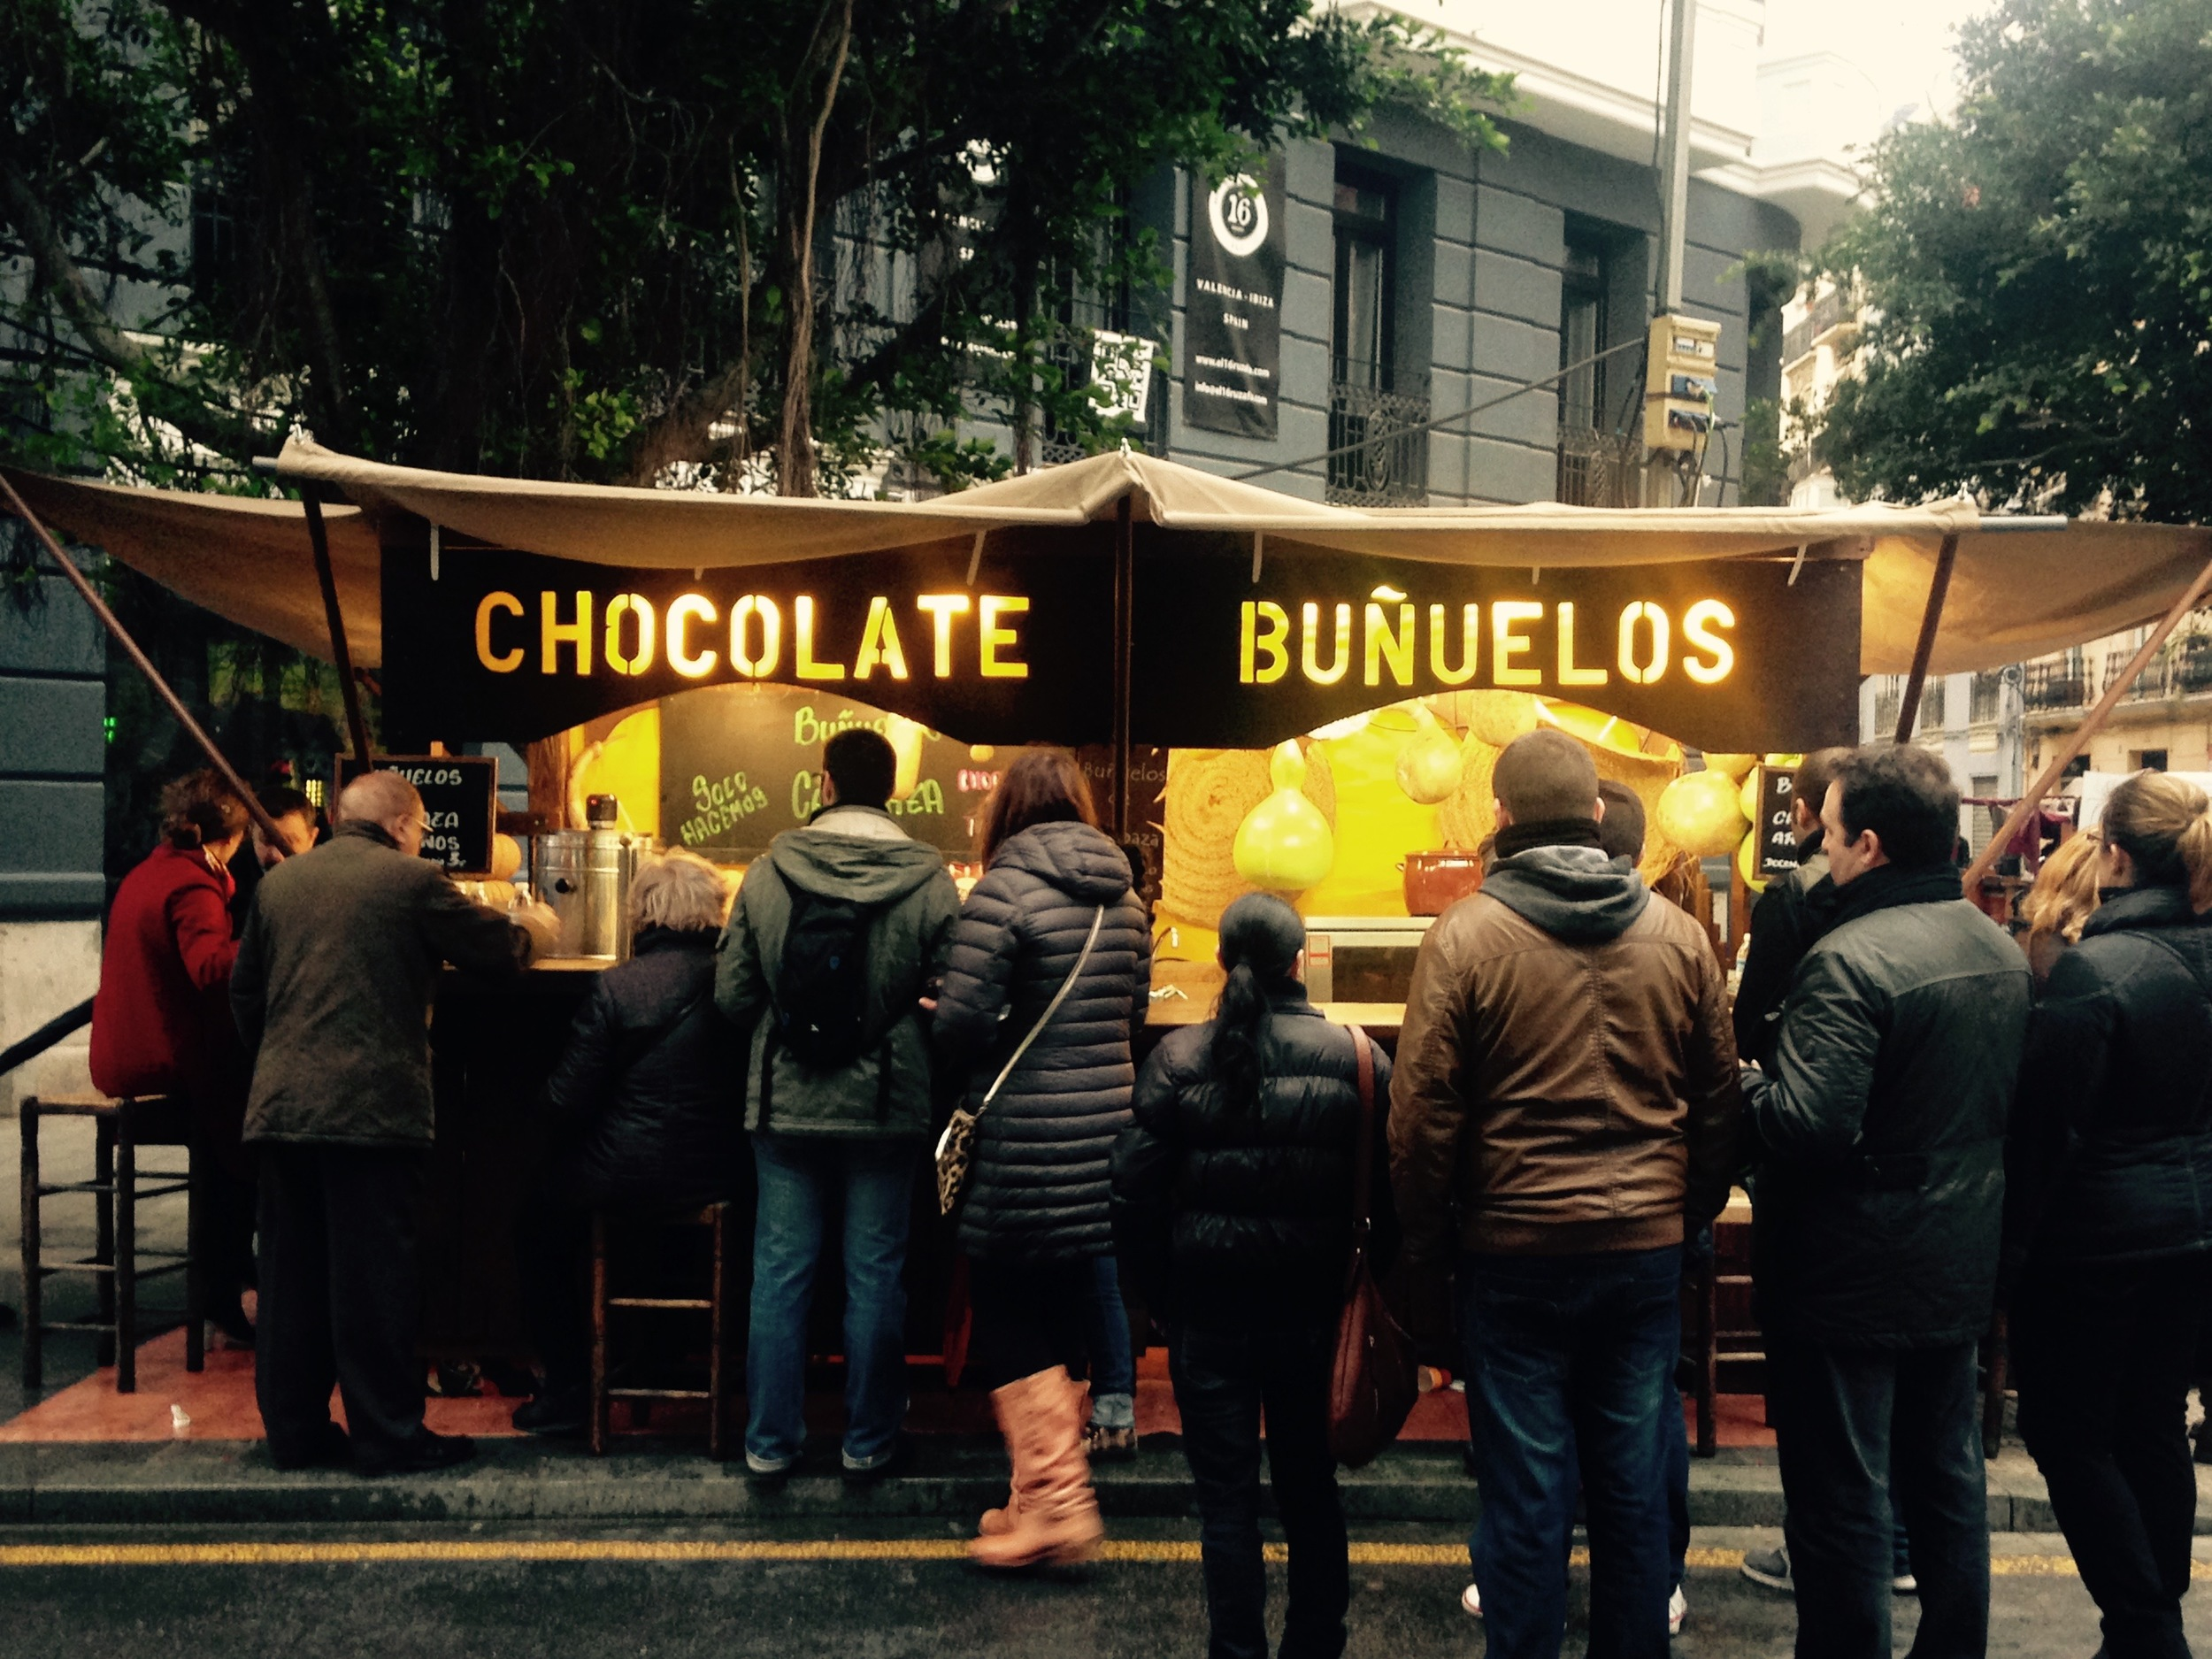 Whether you want hot chocolate, gooey buñuelos, or churros (or all three), you were never 10 feet from a stand to hook you up with the sweet stuff.